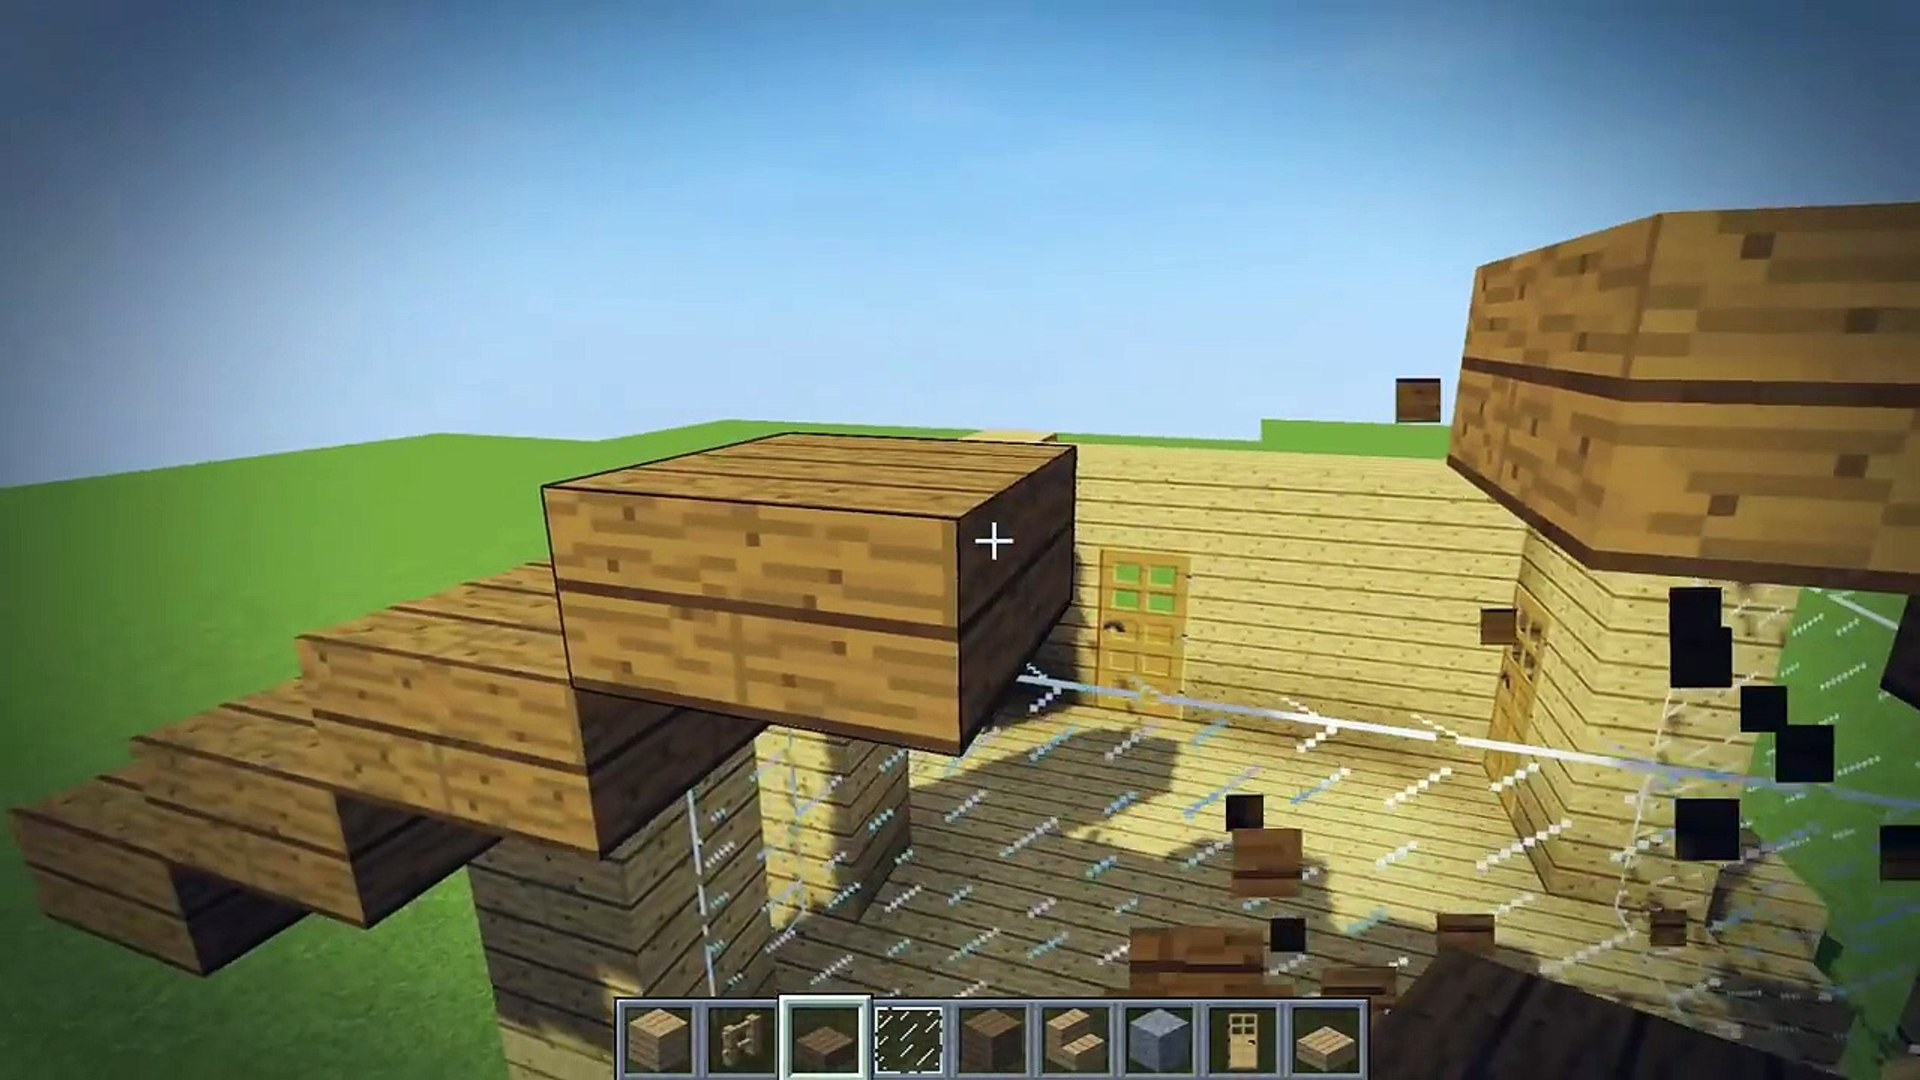 Minecraft 10x10 Starter House Tutorial How To Build A House In Minecraft Video Dailymotion